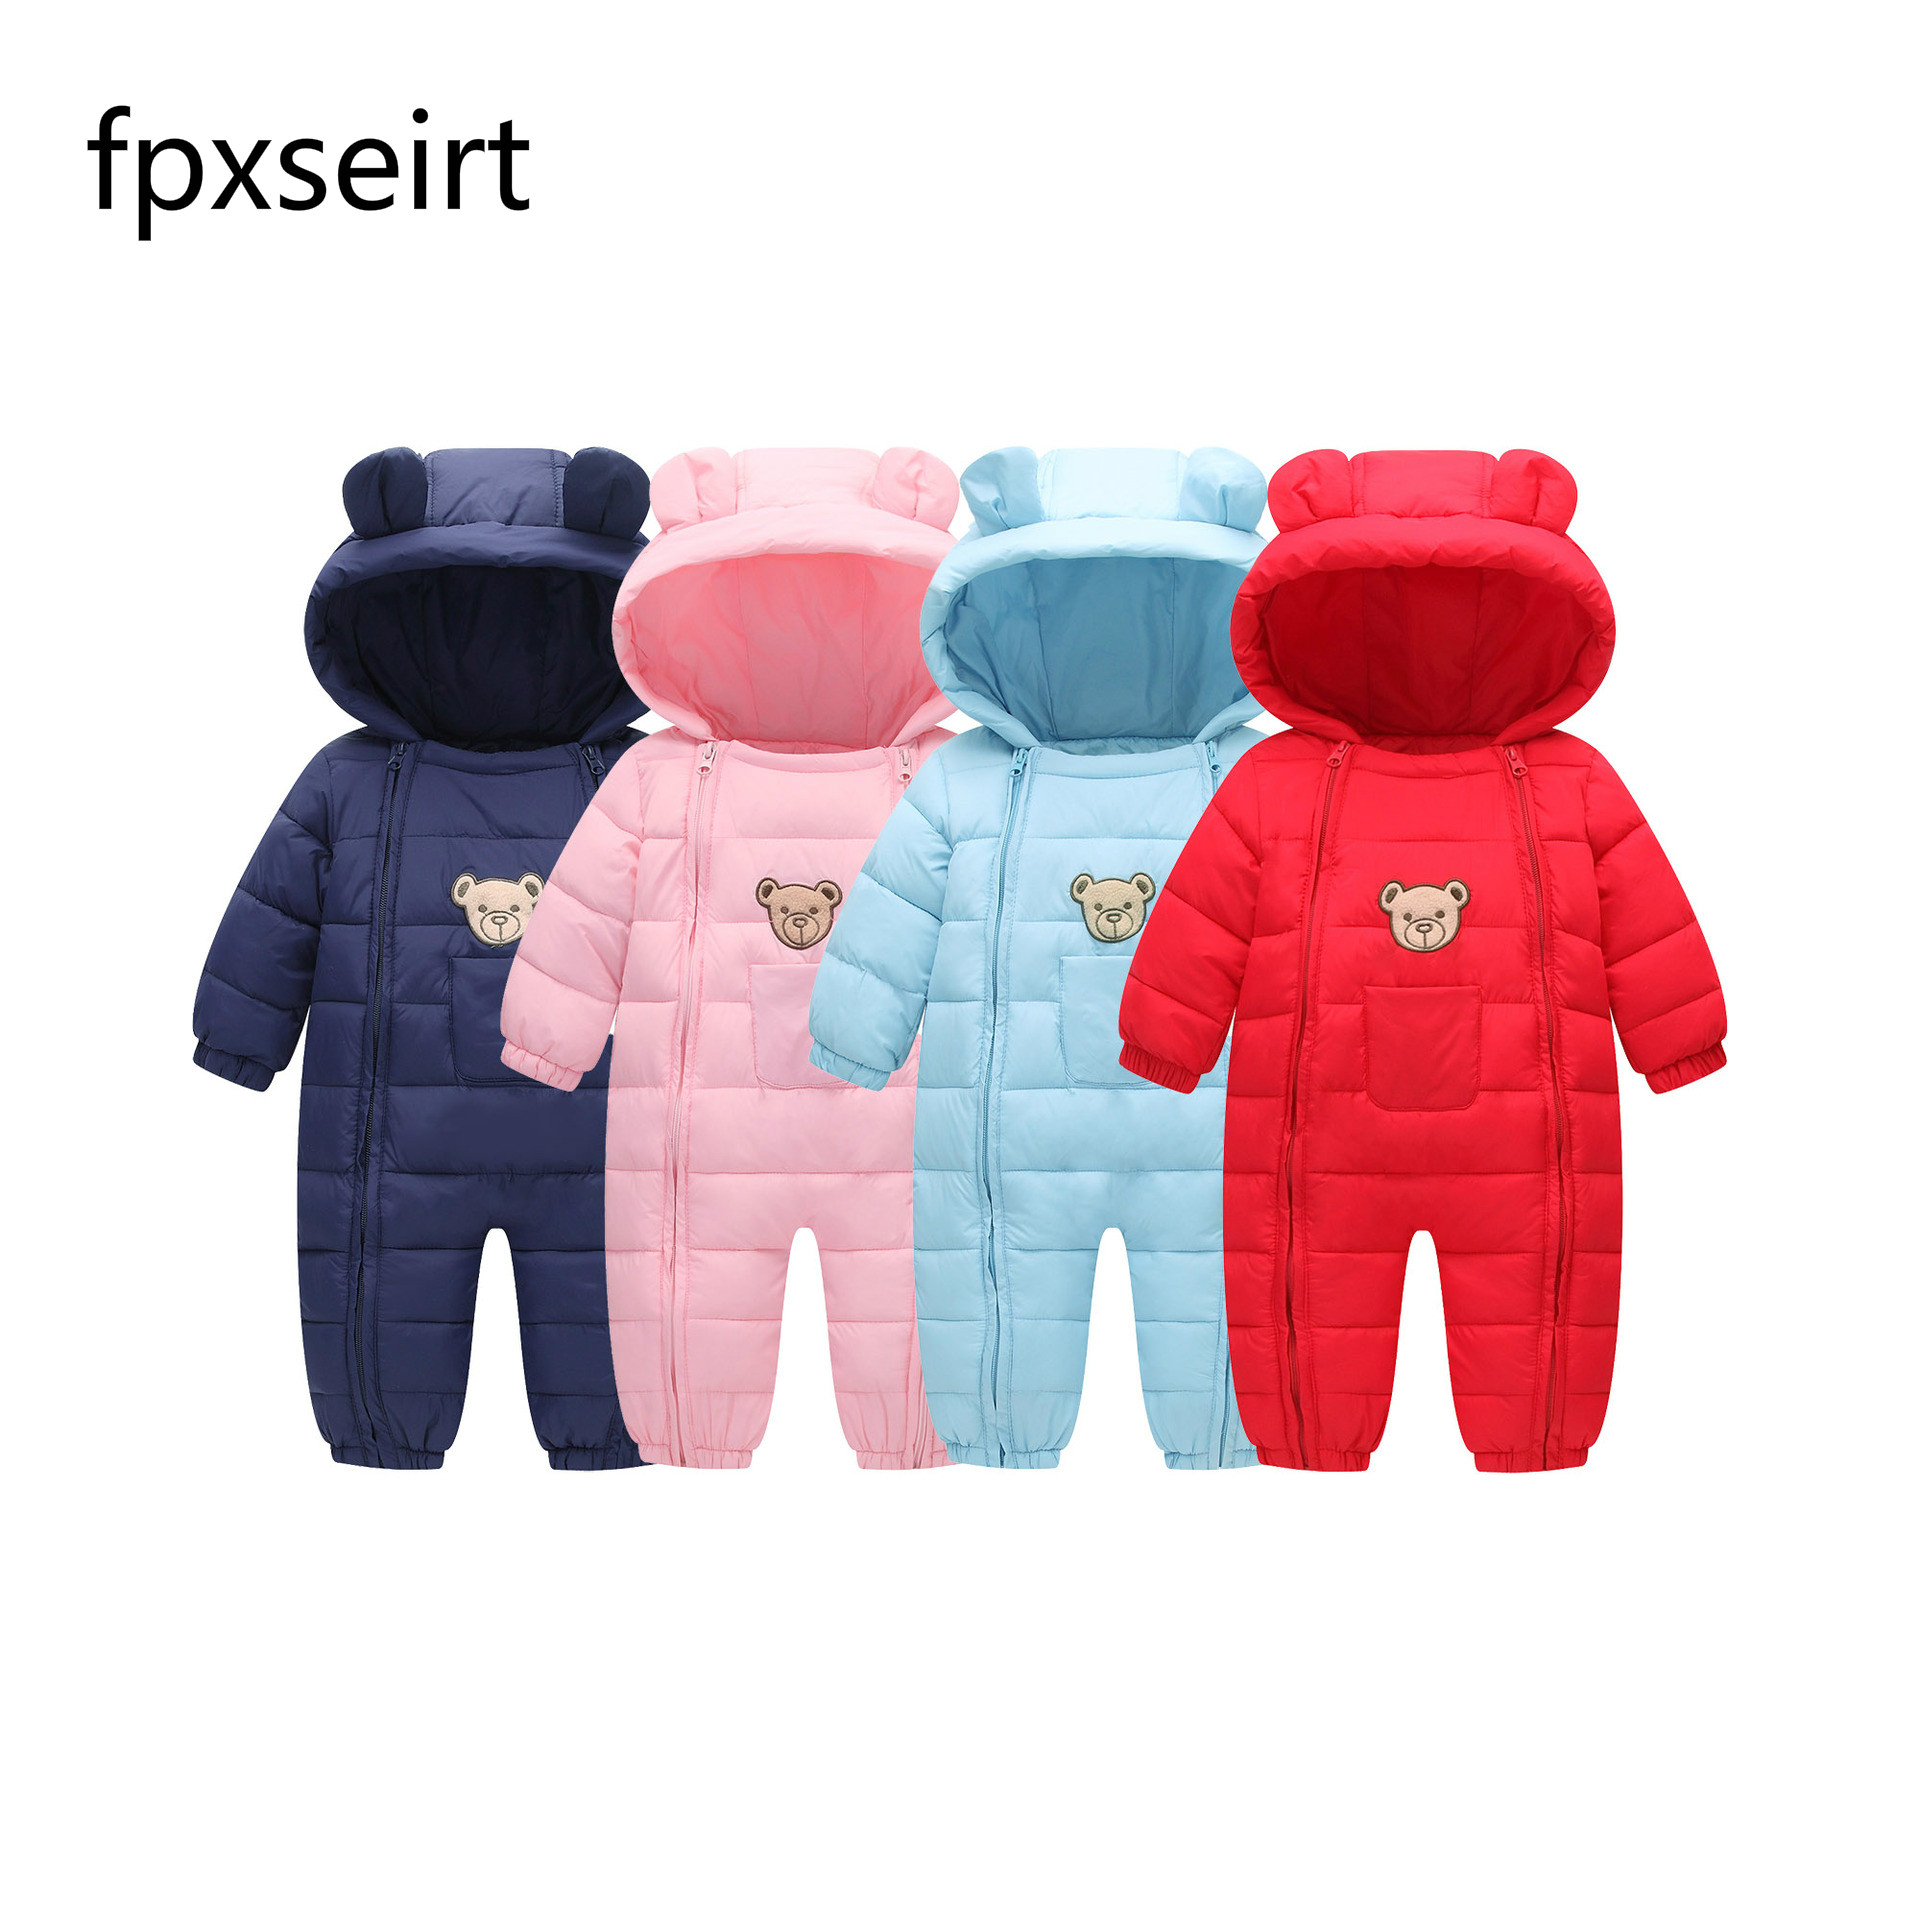 Autumn & Winter Newborn Baby Cotton Clothes Fleece Animal Style Clothing Romper Baby Clothes Cotton-padded Overalls new winter 2015 women cotton padded clothes draw string of cultivate one s morality show thin fashionable